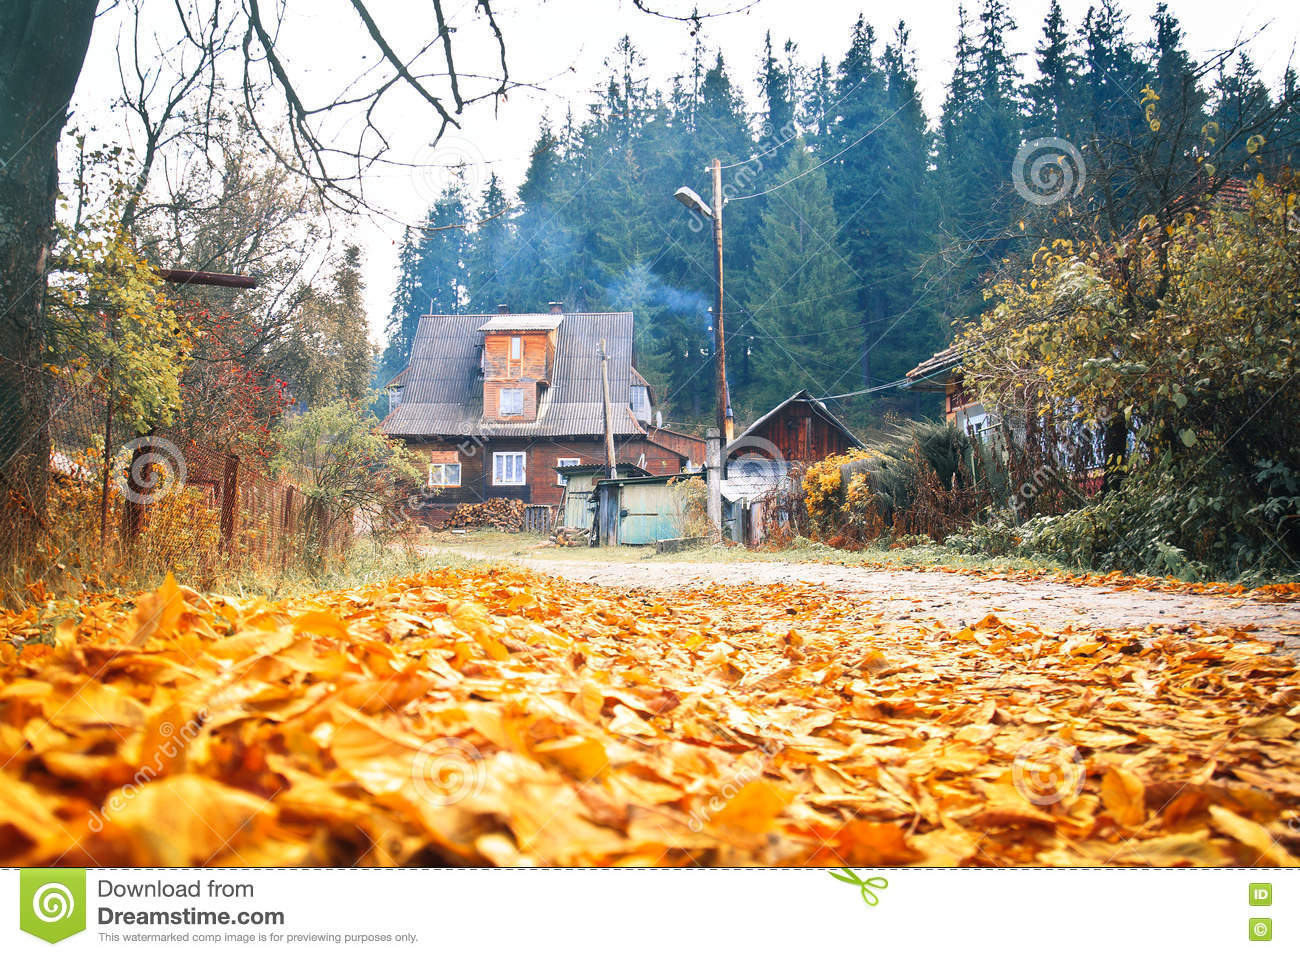 paysage d 39 automne avec une vieille maison en bois photo stock image du tranquillit orange. Black Bedroom Furniture Sets. Home Design Ideas